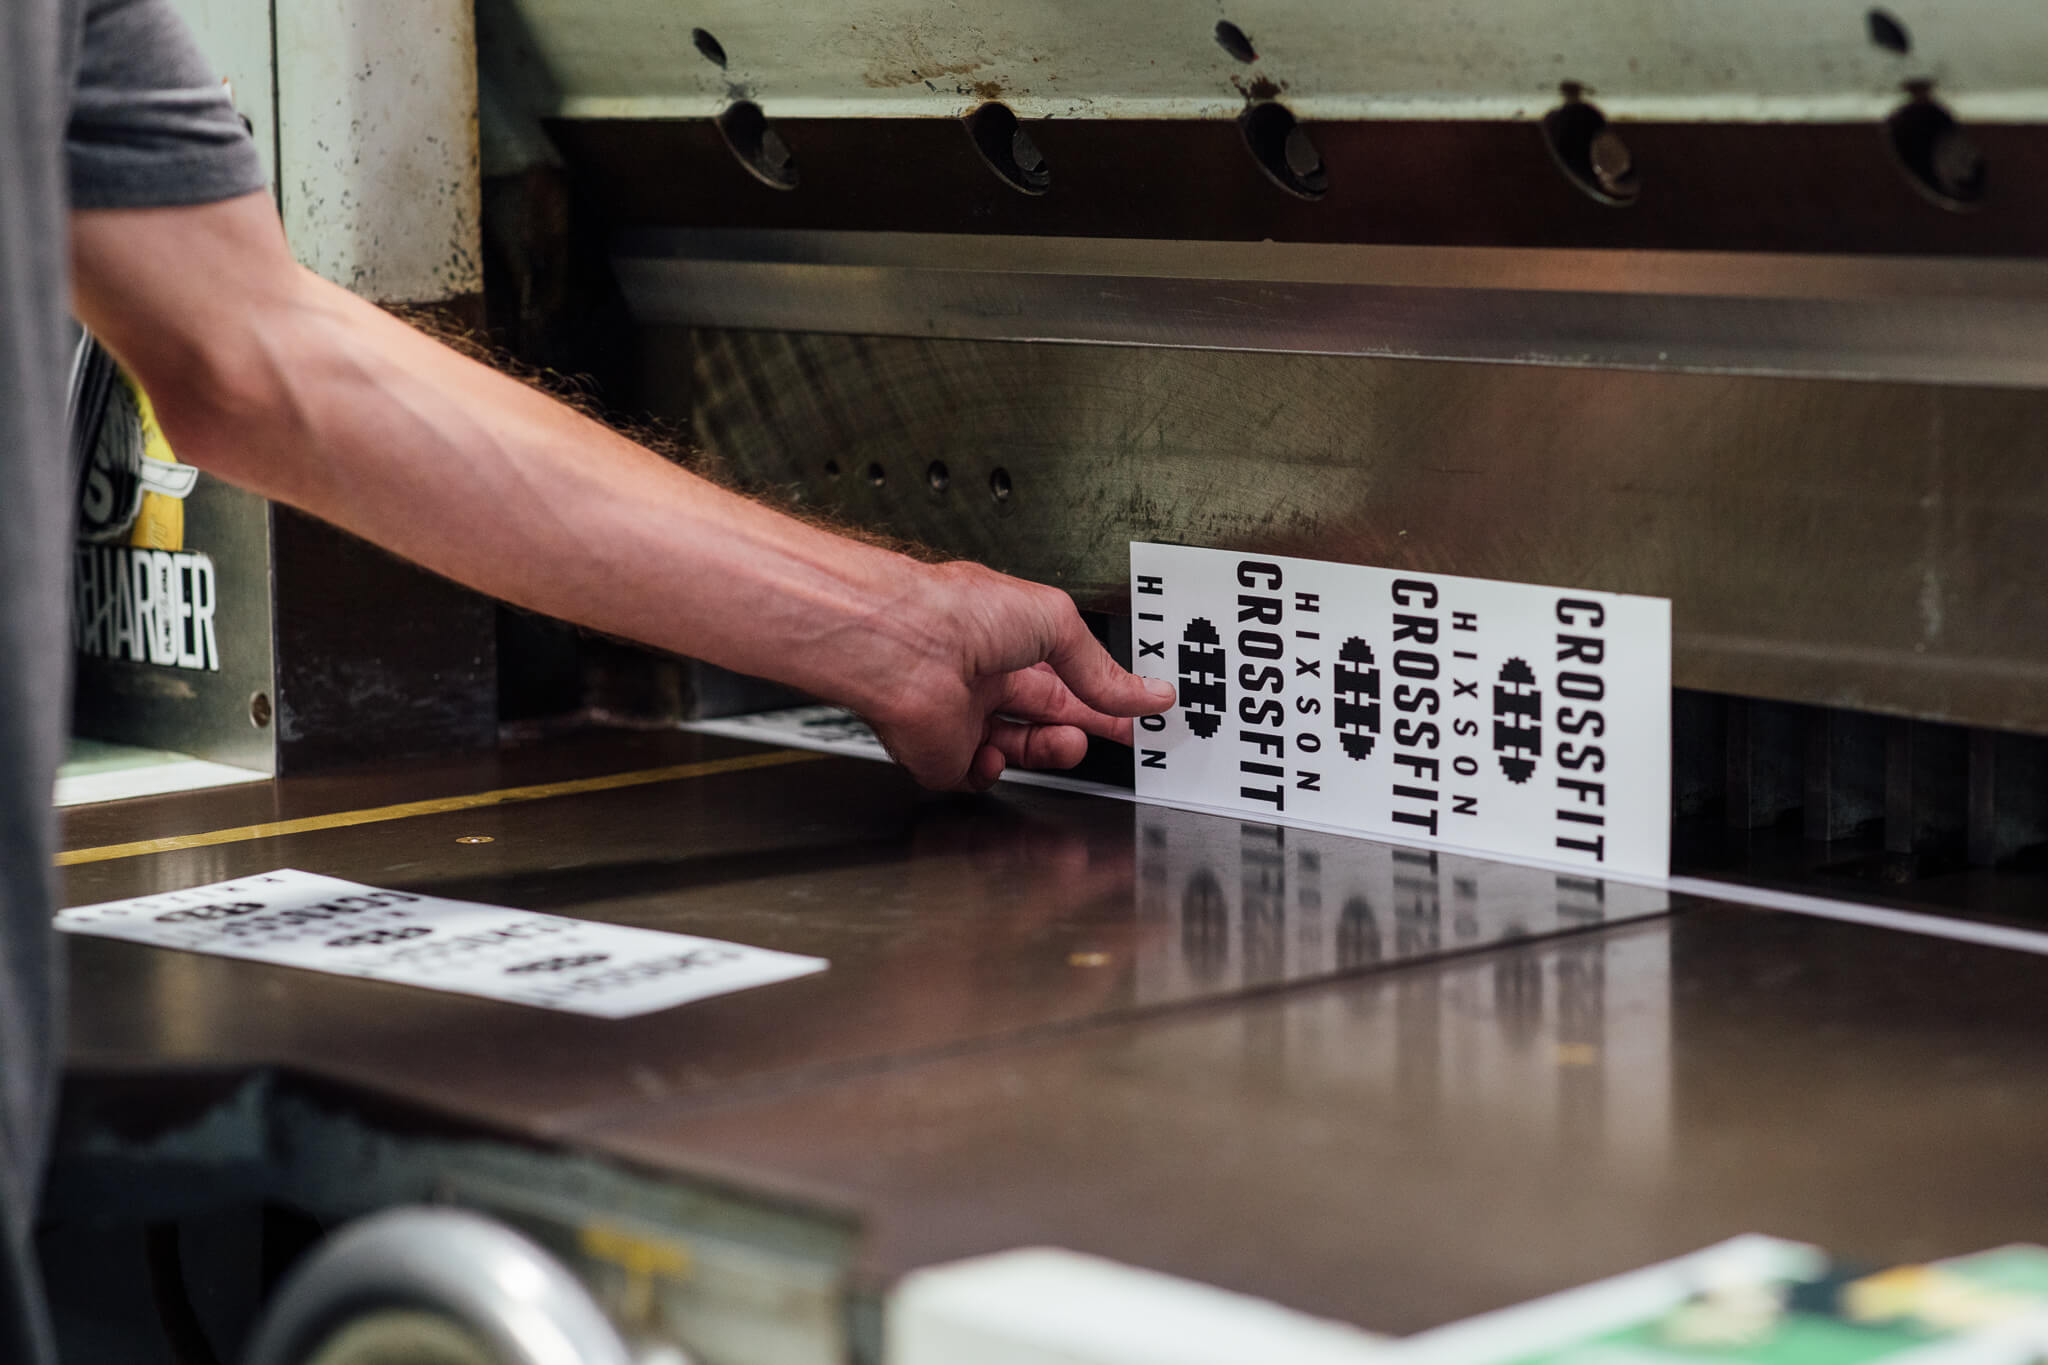 A Go Decals worker uses a Guillotine to cut Crossfit Hixson Stickers